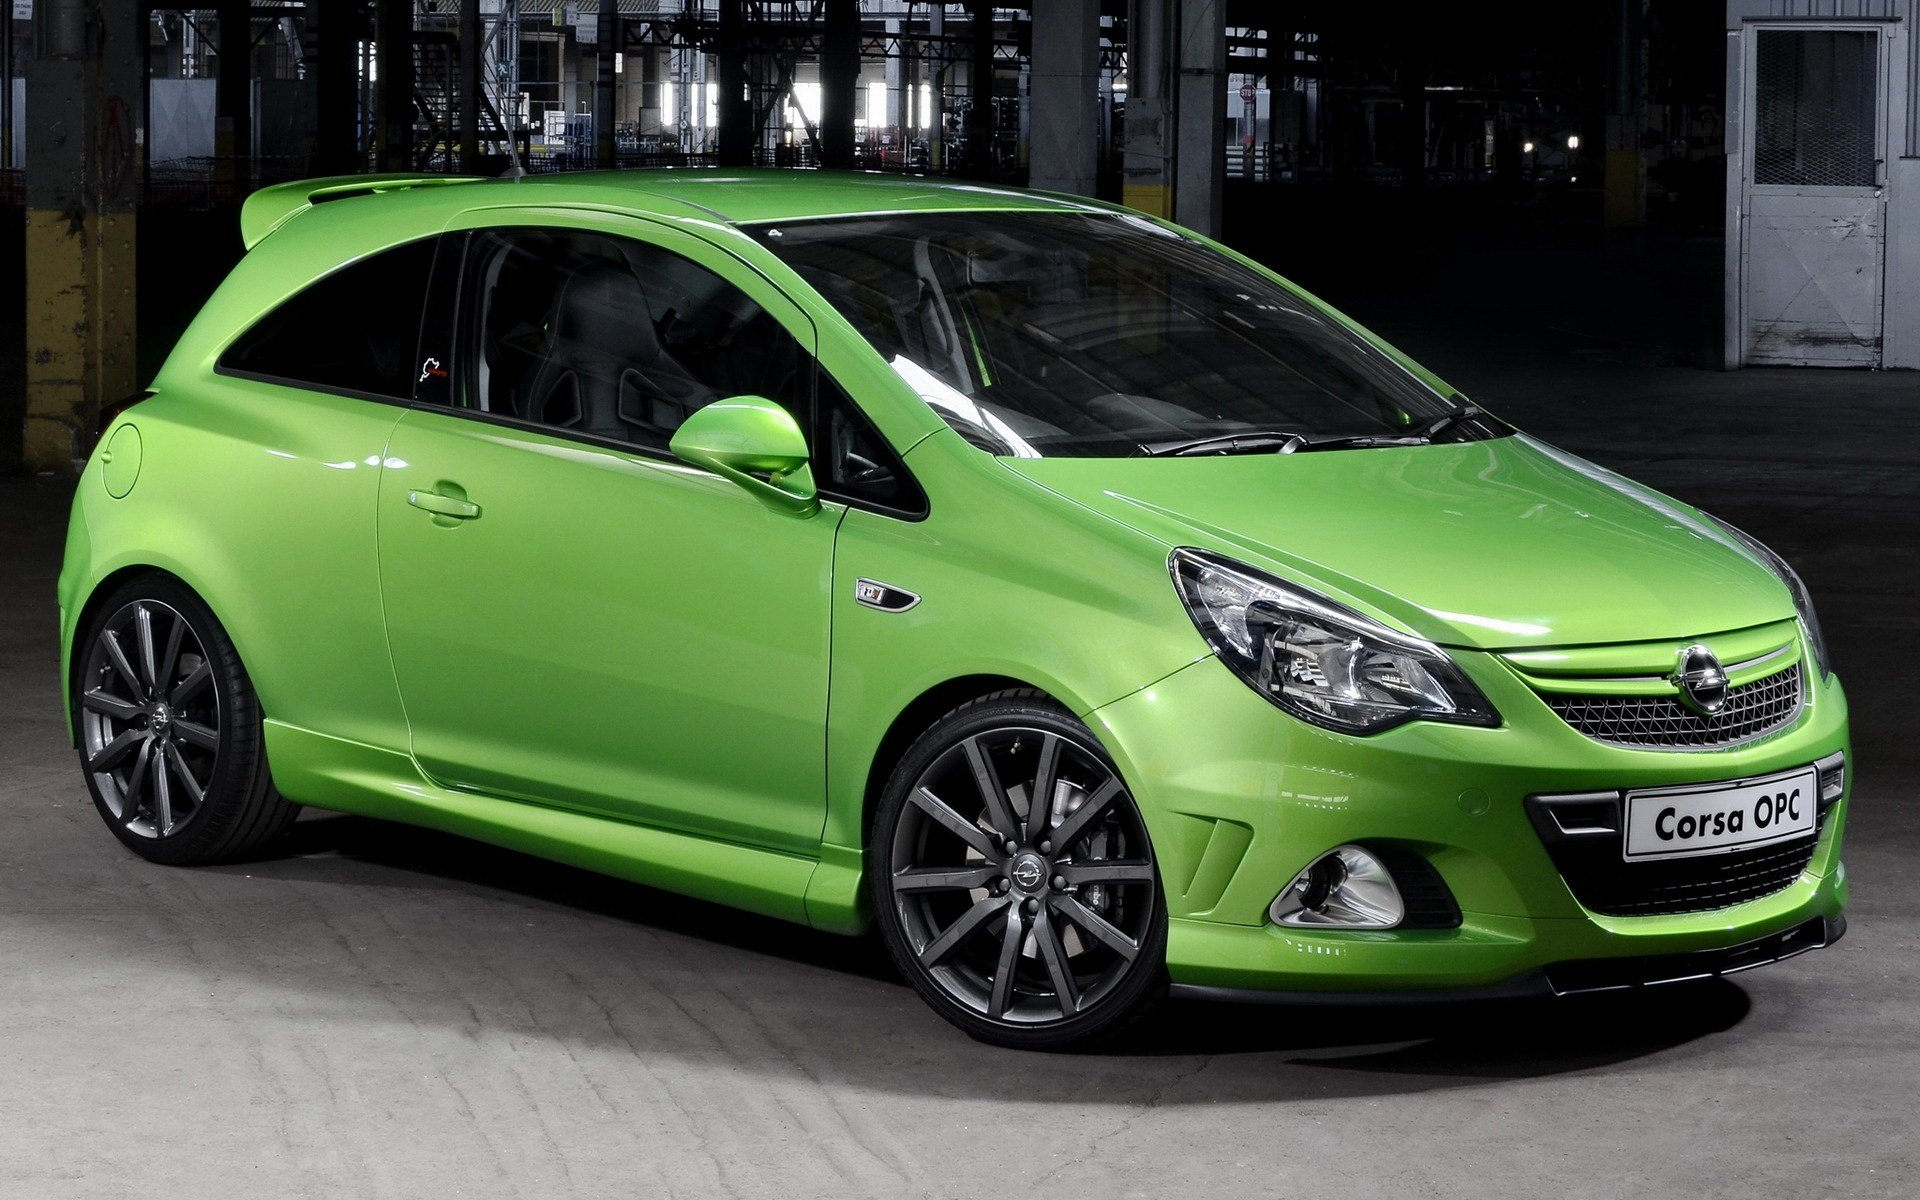 Latest 2013 Opel Corsa Opc Nurburgring Edition Za Wallpapers Free Download